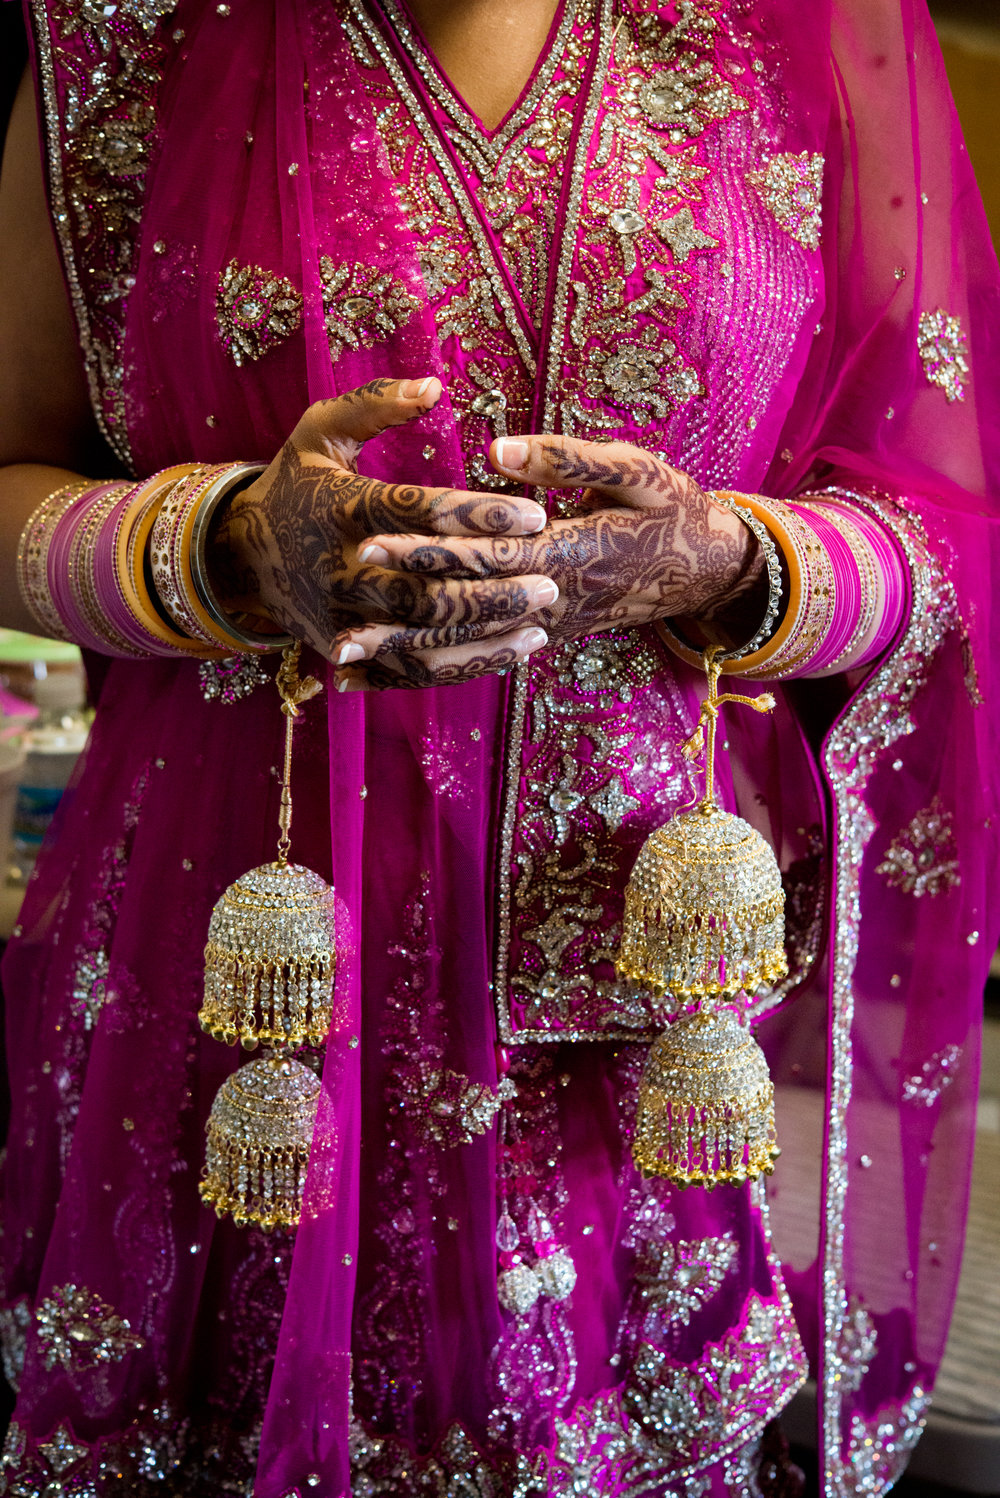 Brides hands with henna